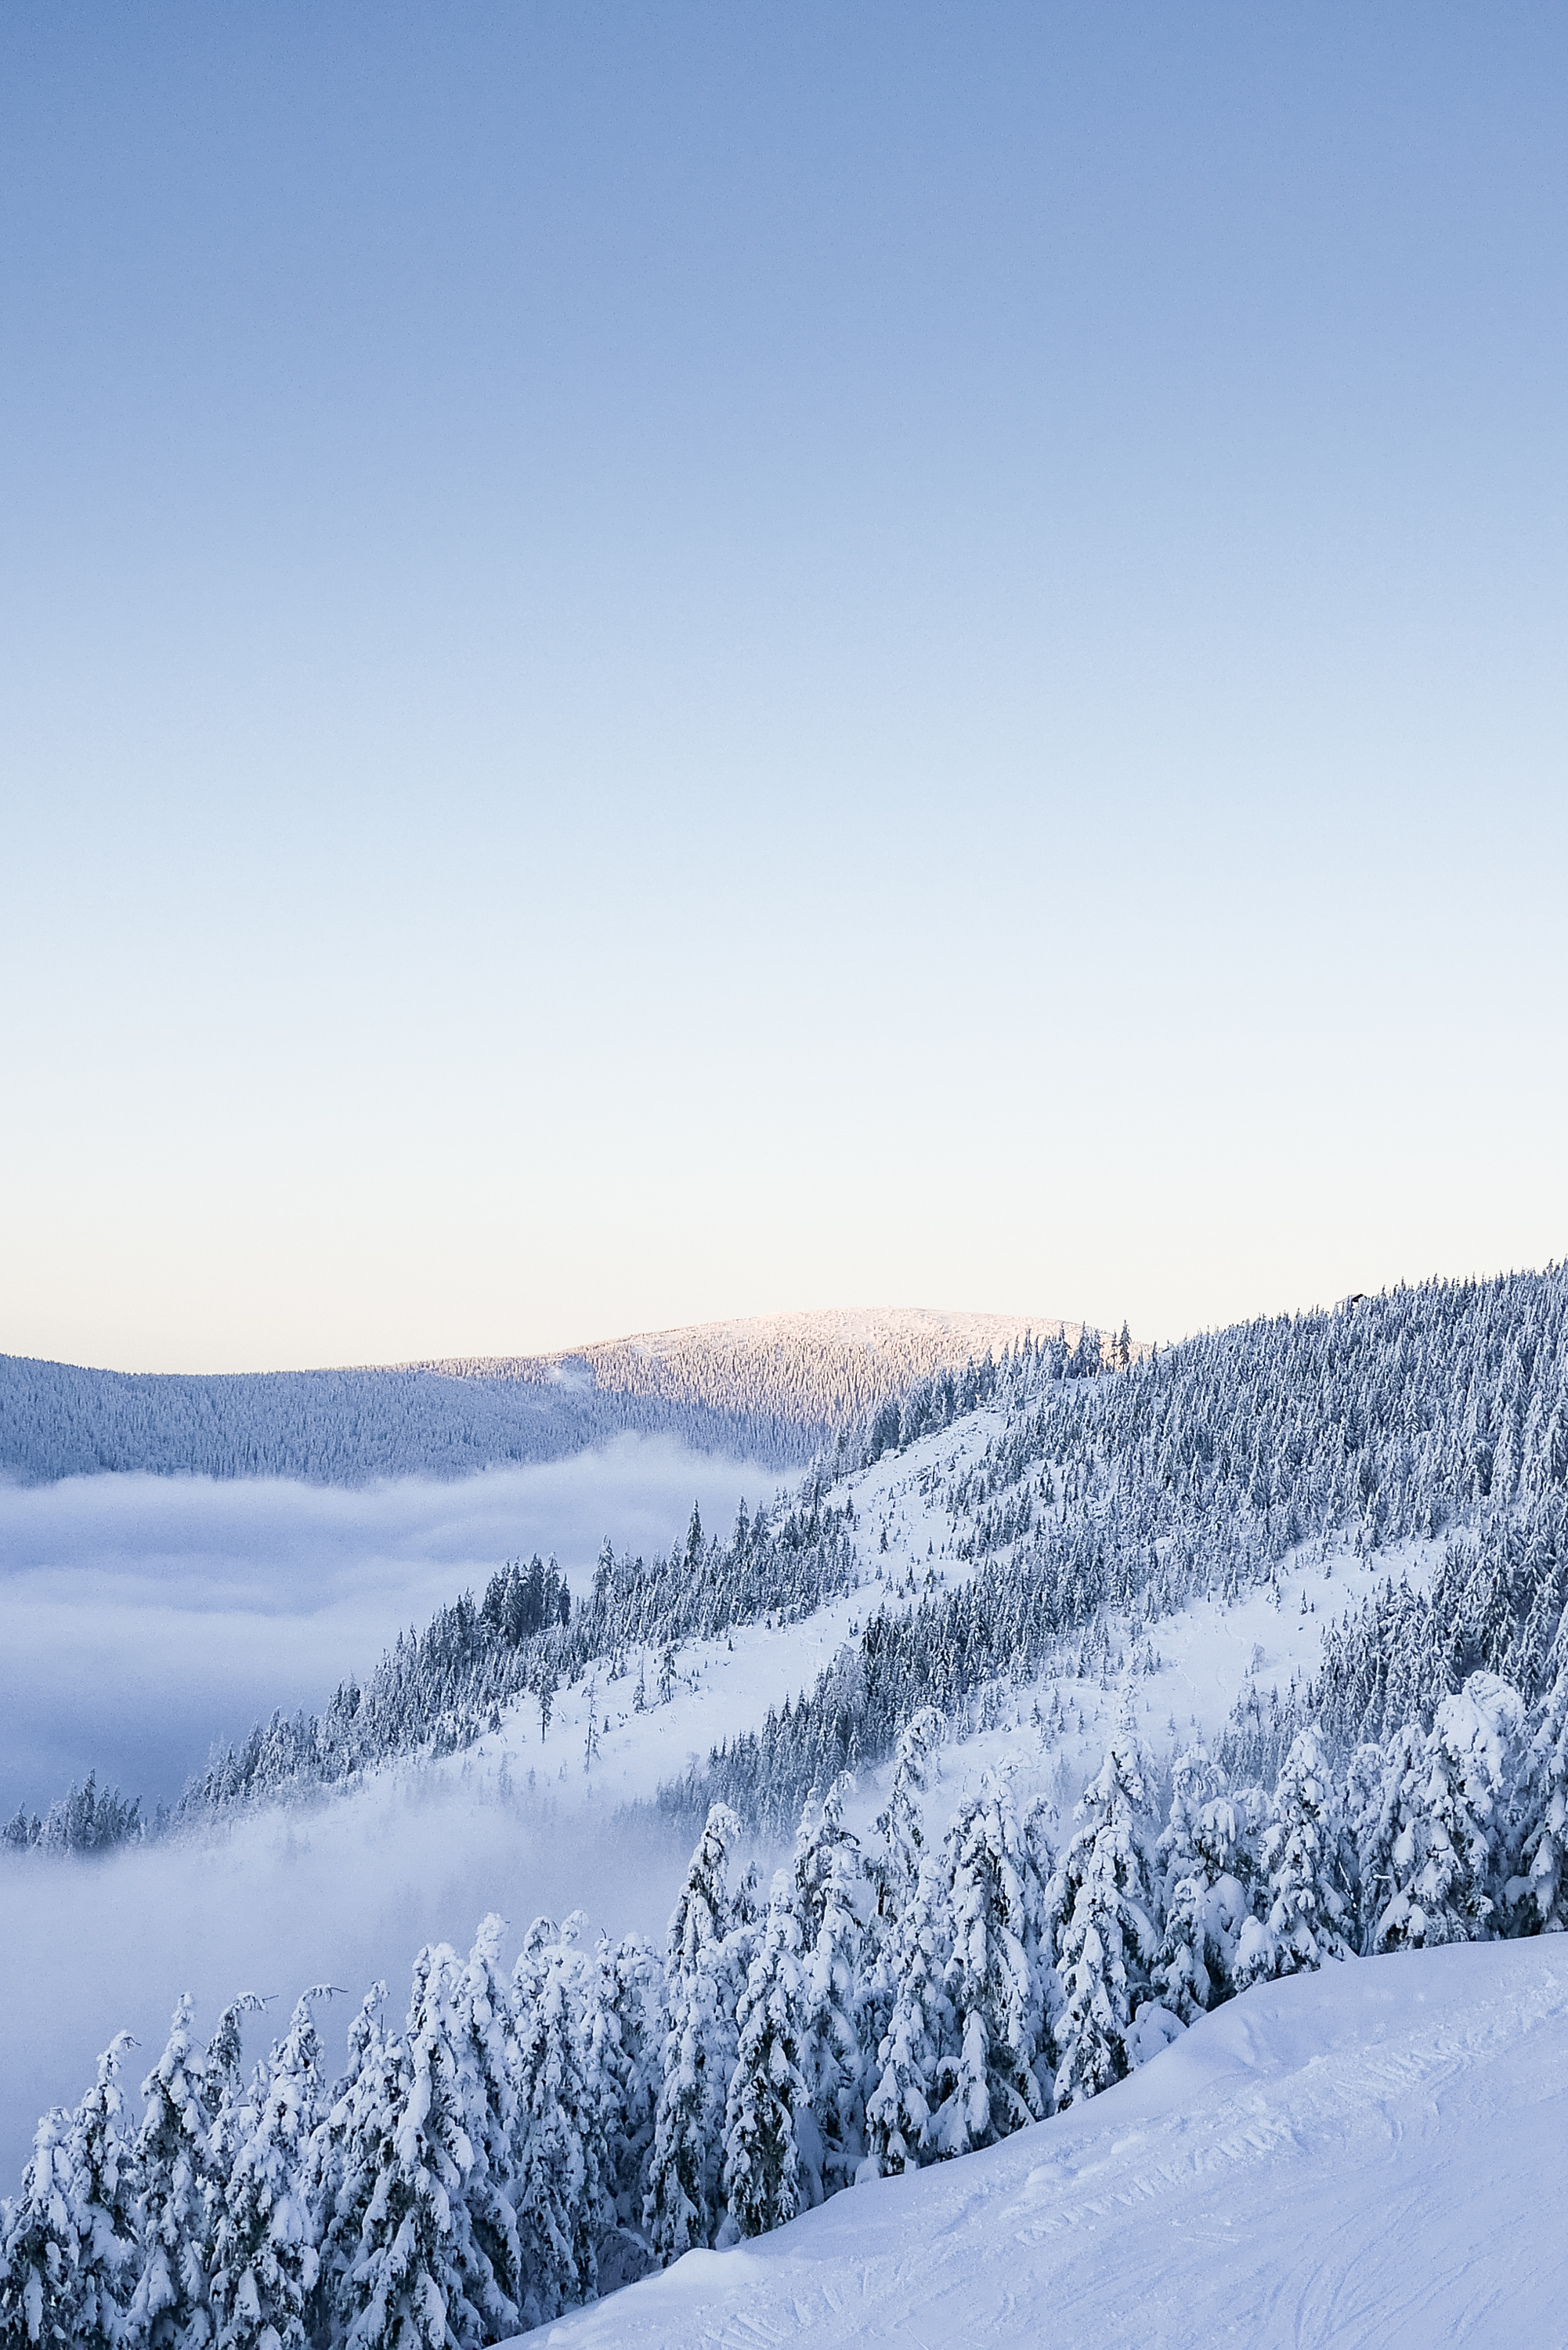 Snowy Hills with Cloudless Sky Free Stock Photo